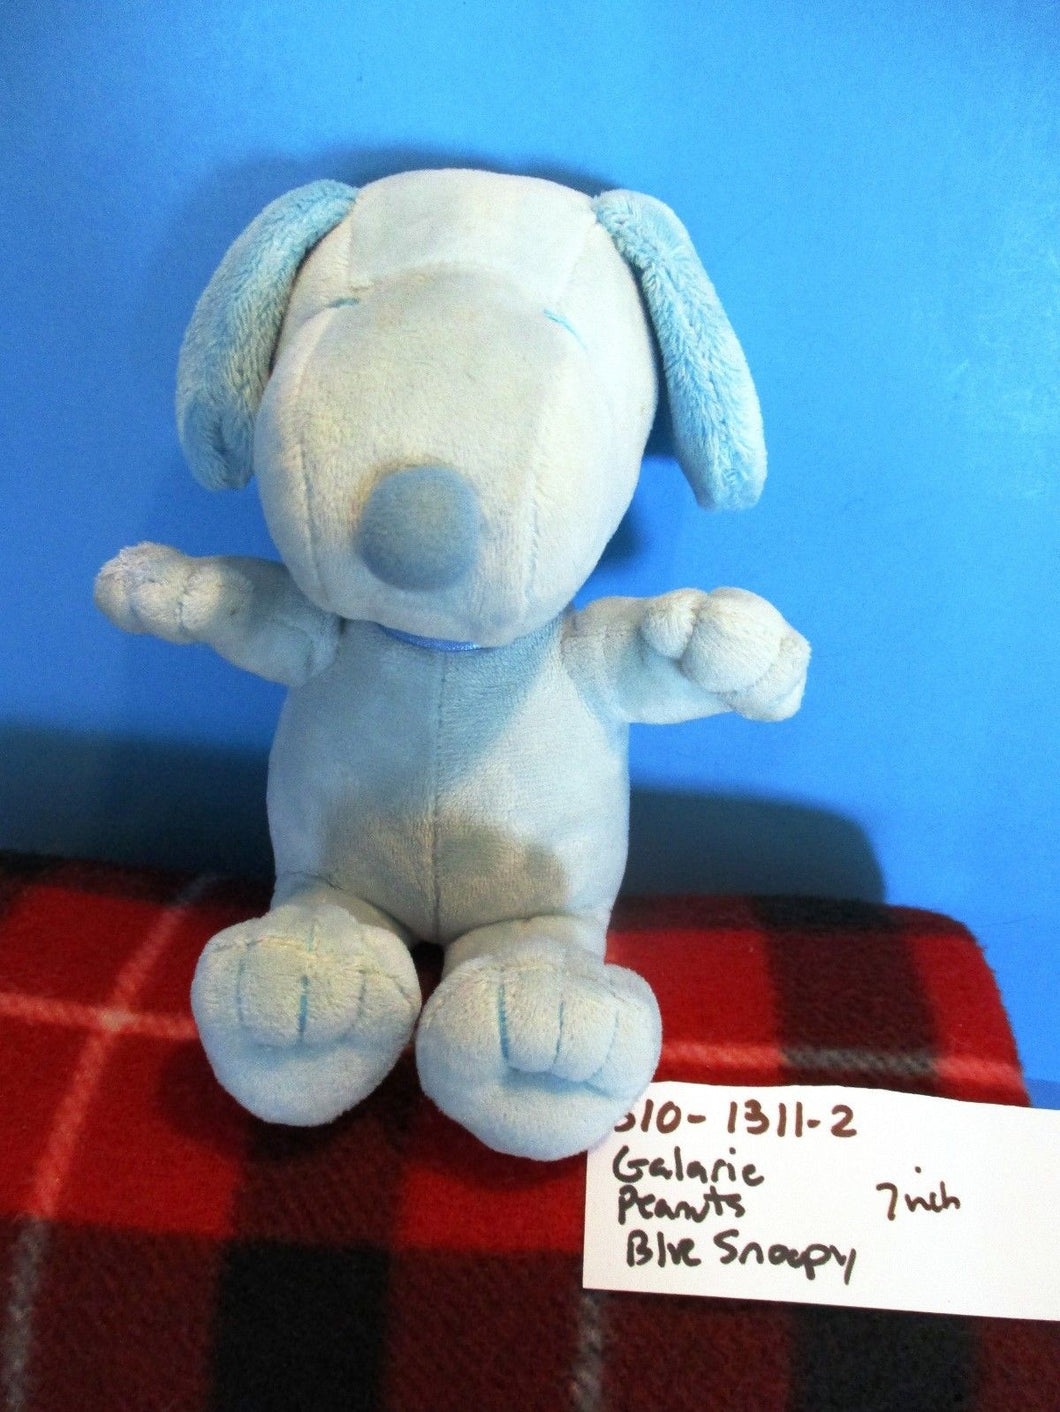 Galerie Peanuts Blue Snoopy plush(310-1311-2)